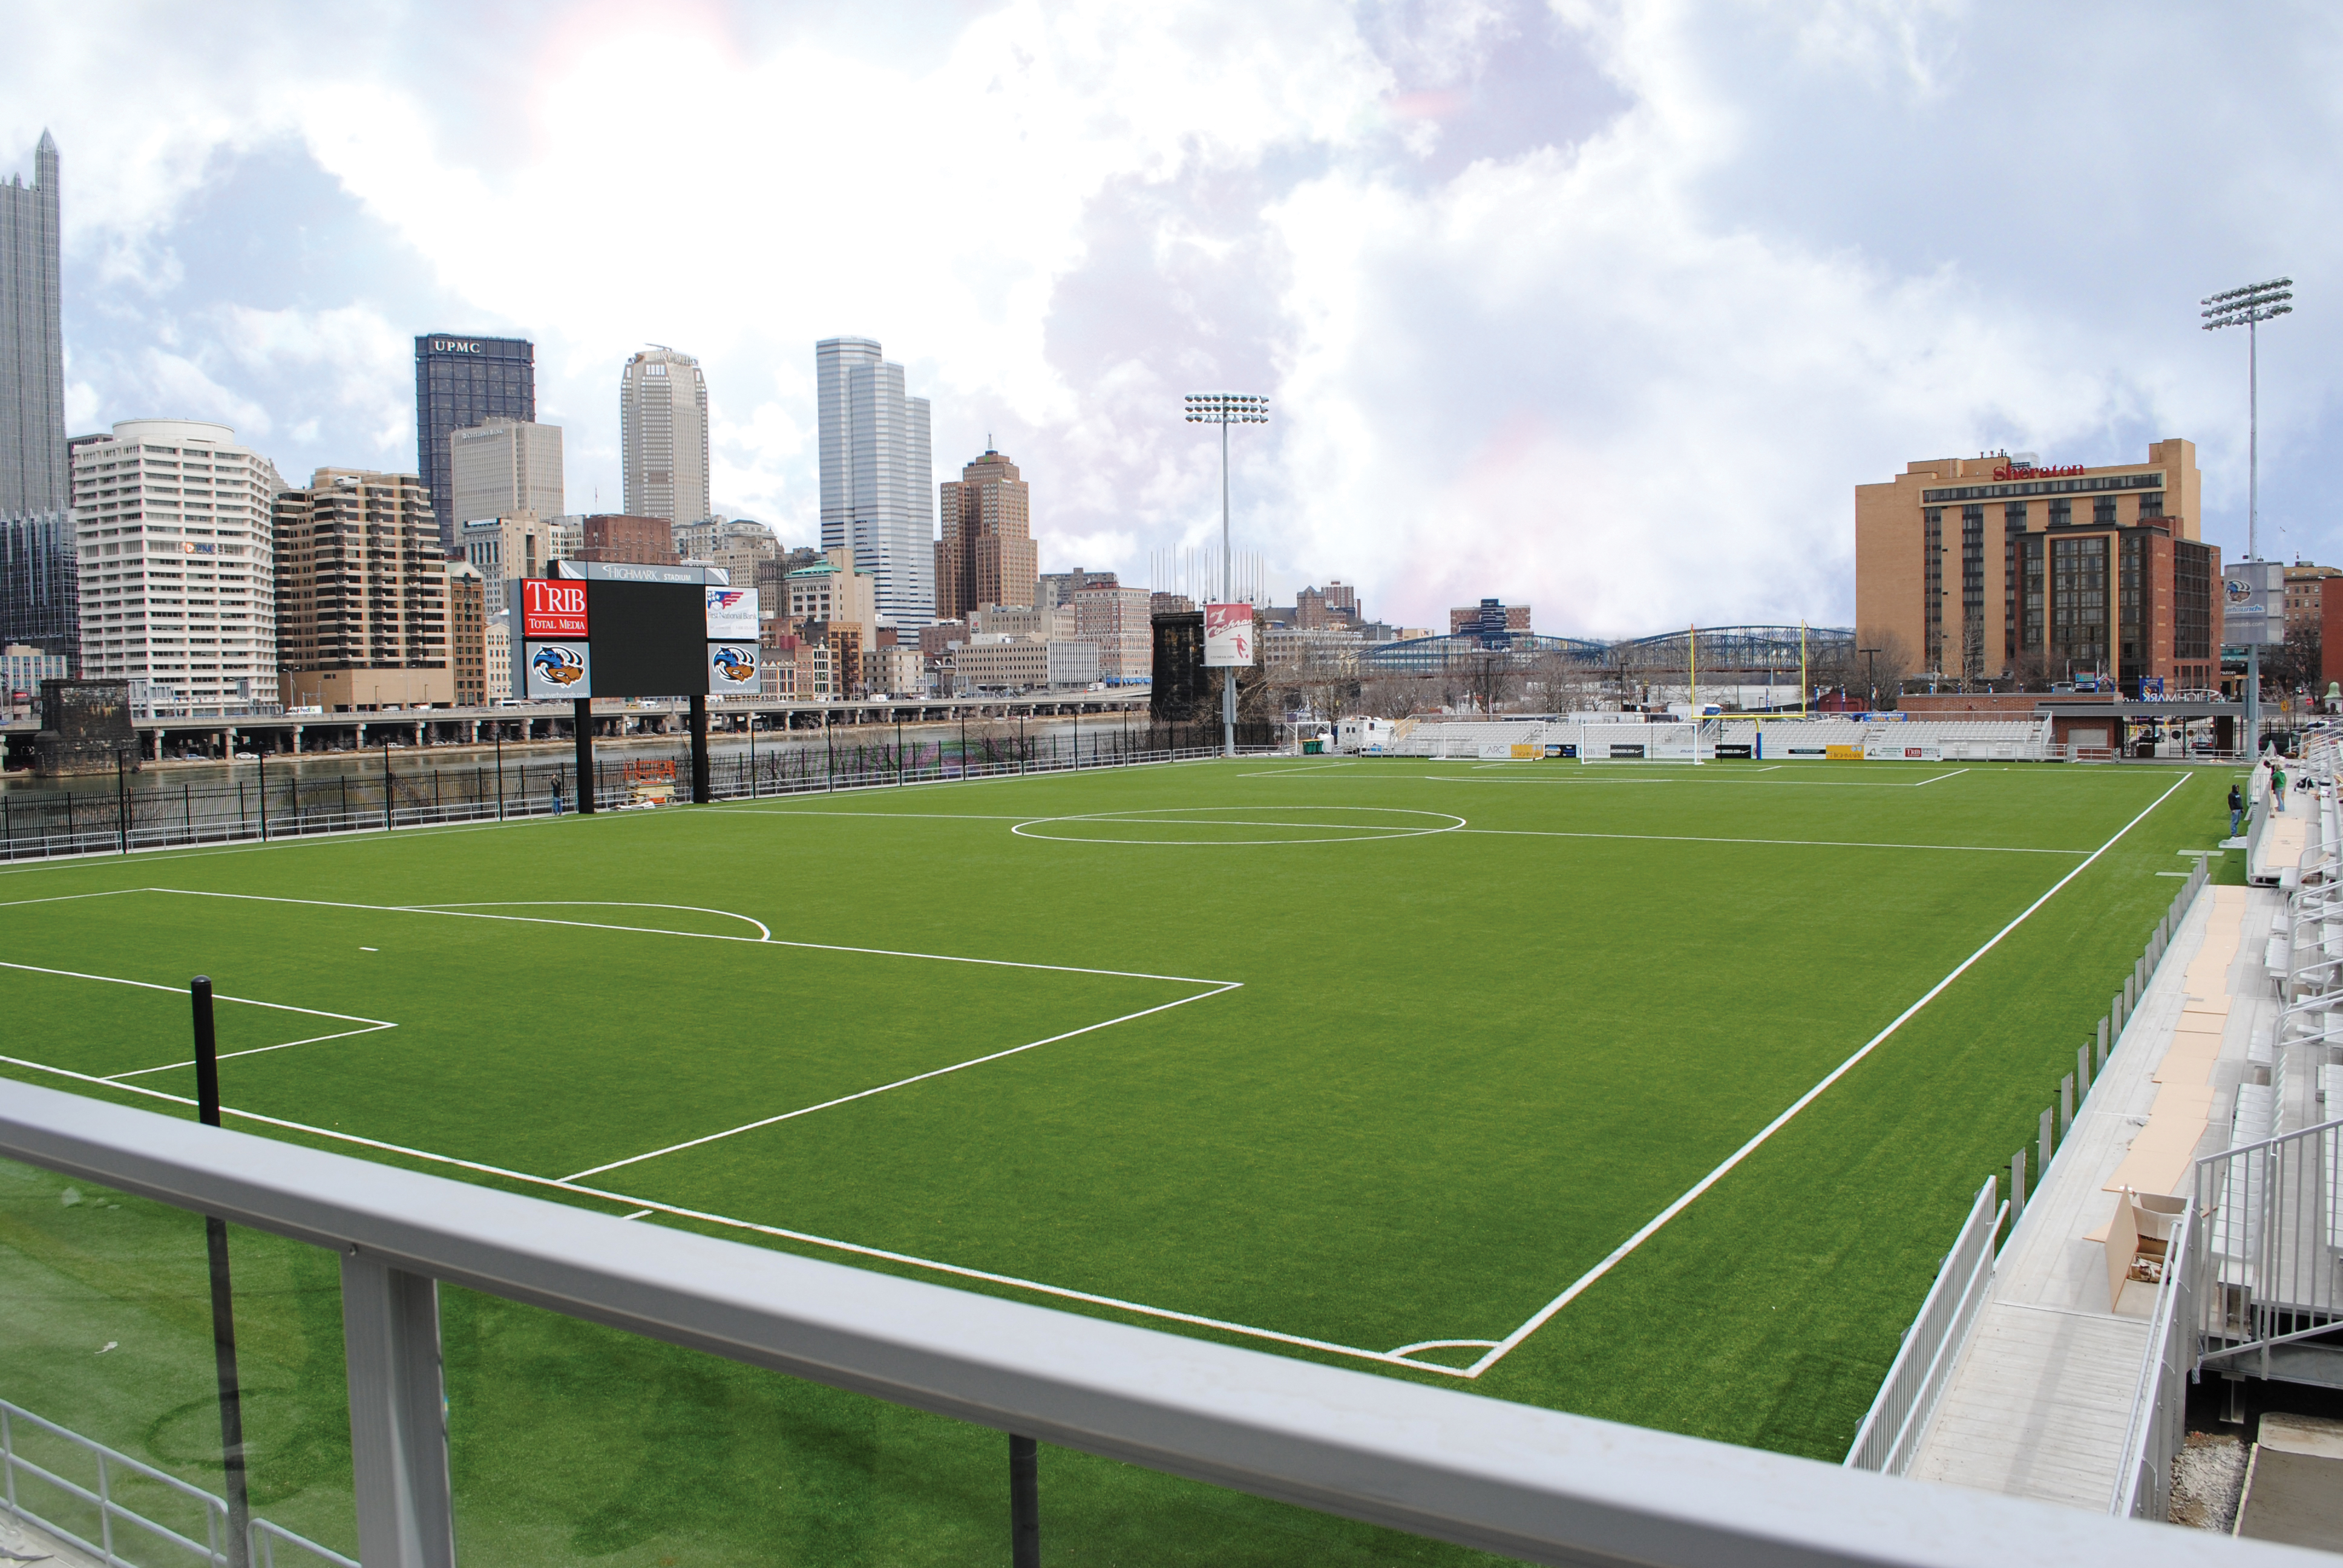 Highmark Stadium Image 1